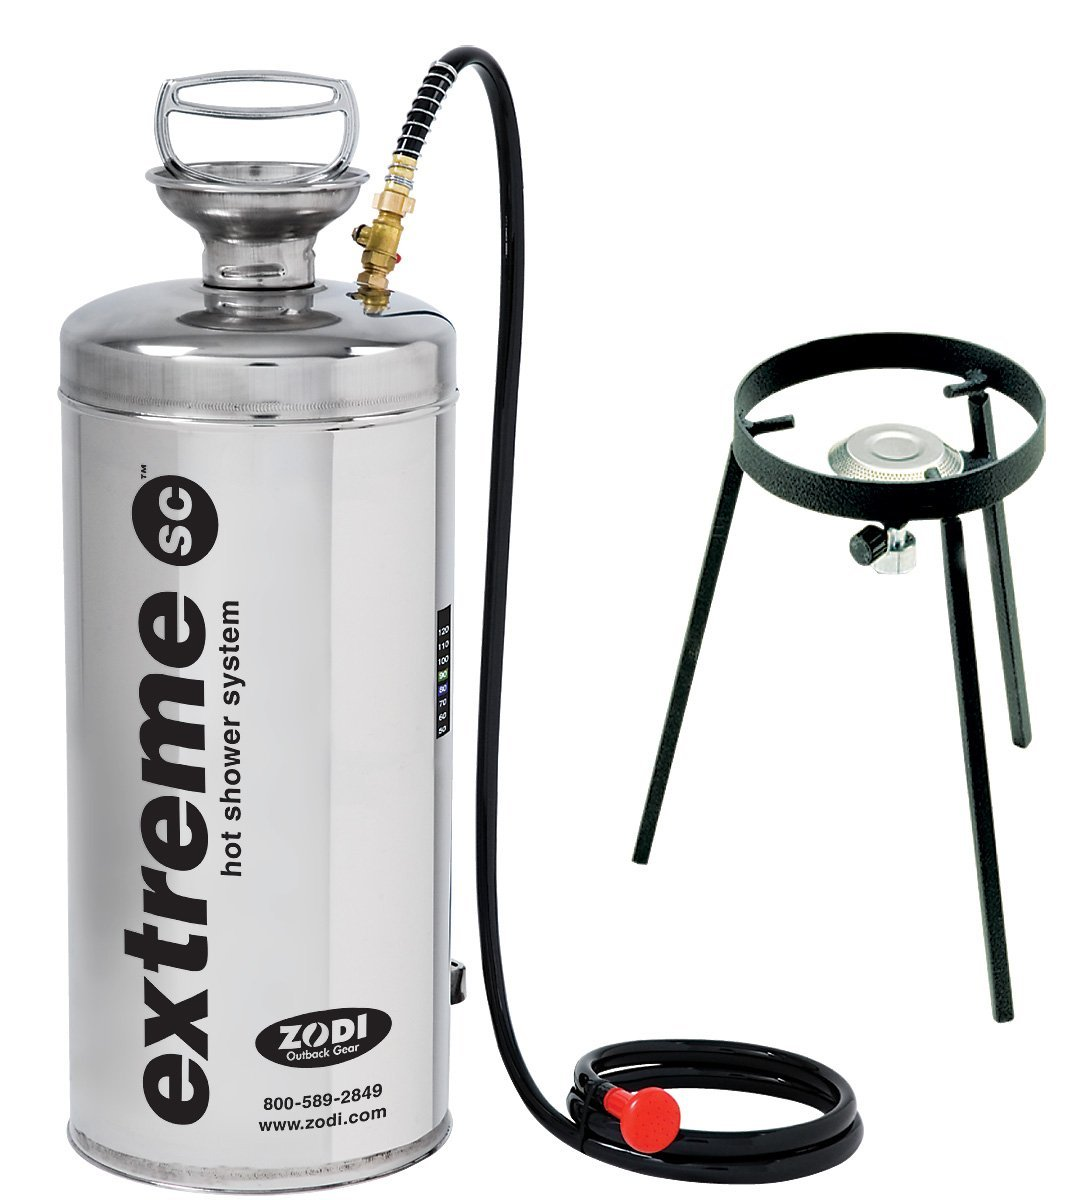 Zodi Outback Gear Extreme SC Hot Shower, Silver 8170